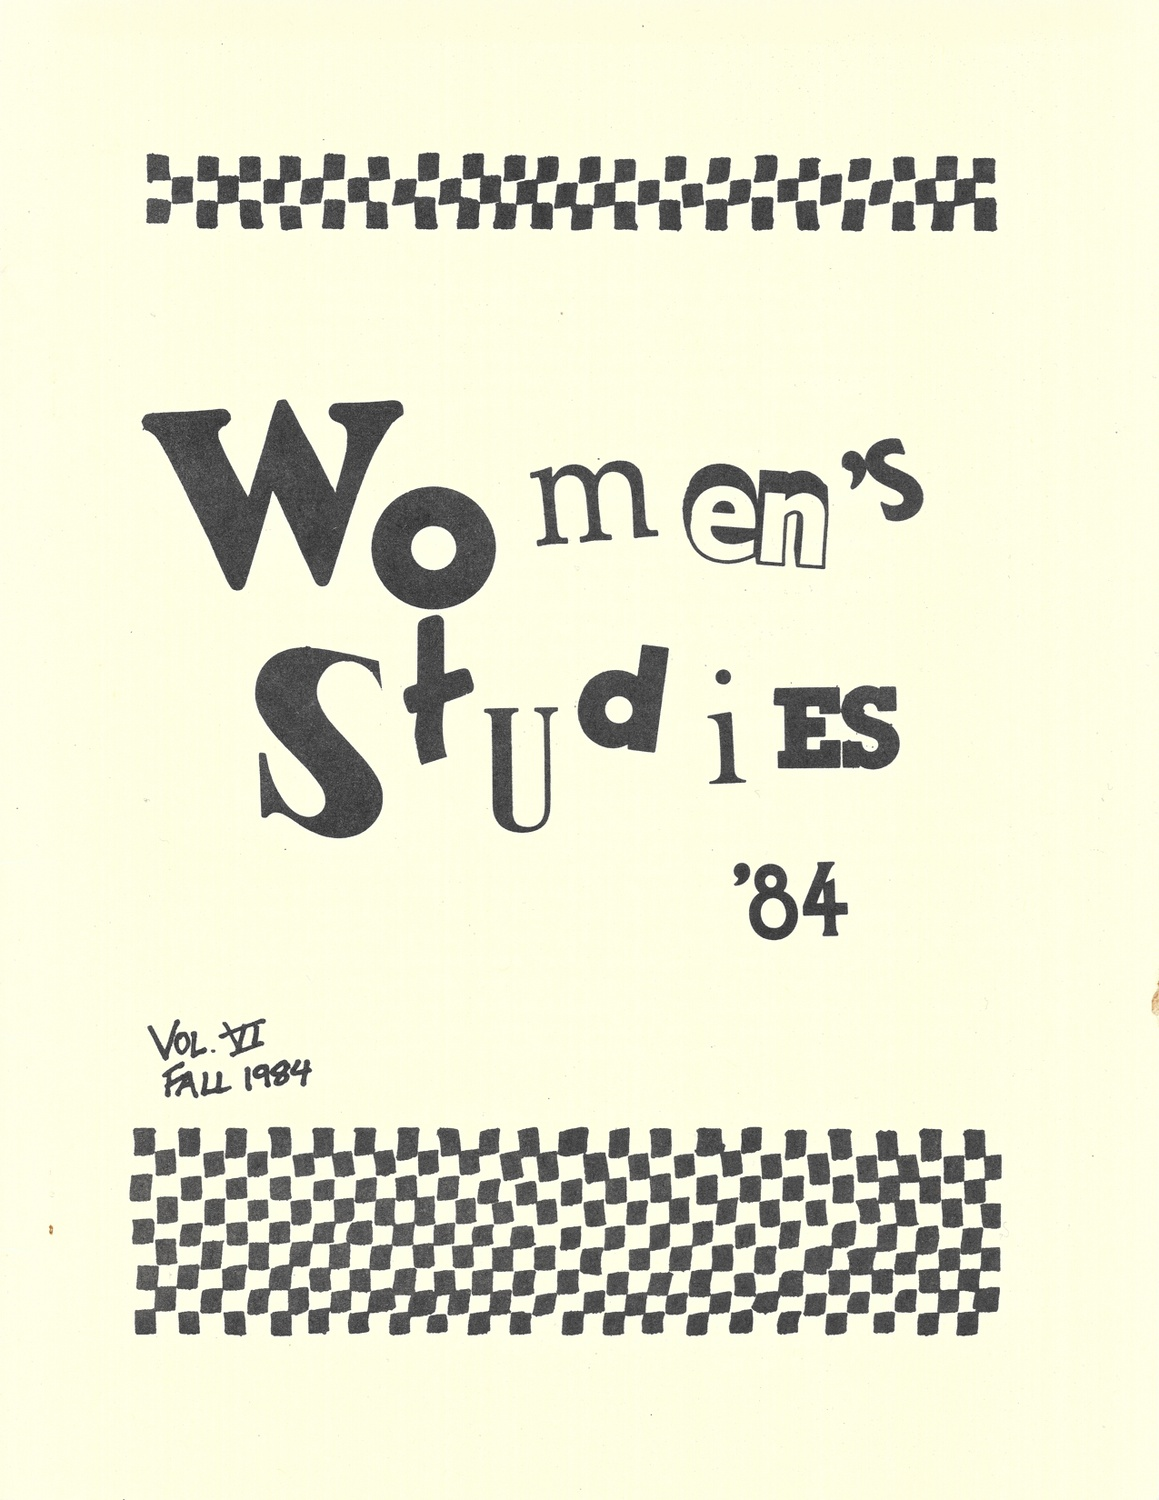 The Radcliffe Union of Students made its own women's studies course catalogs in the early 1980s.